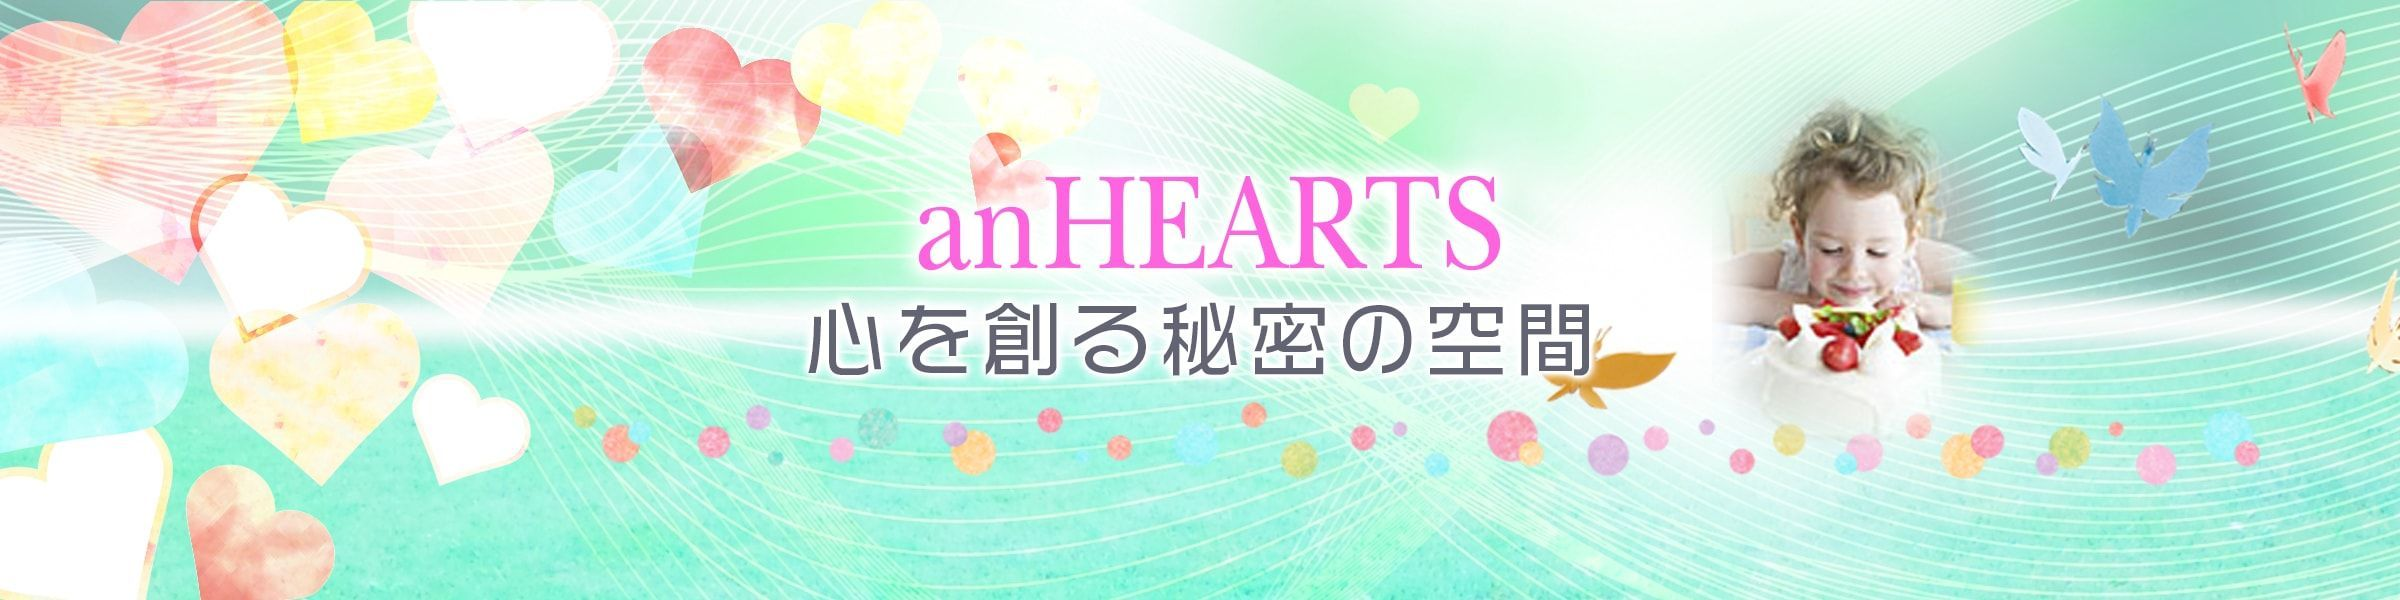 anHEARTS